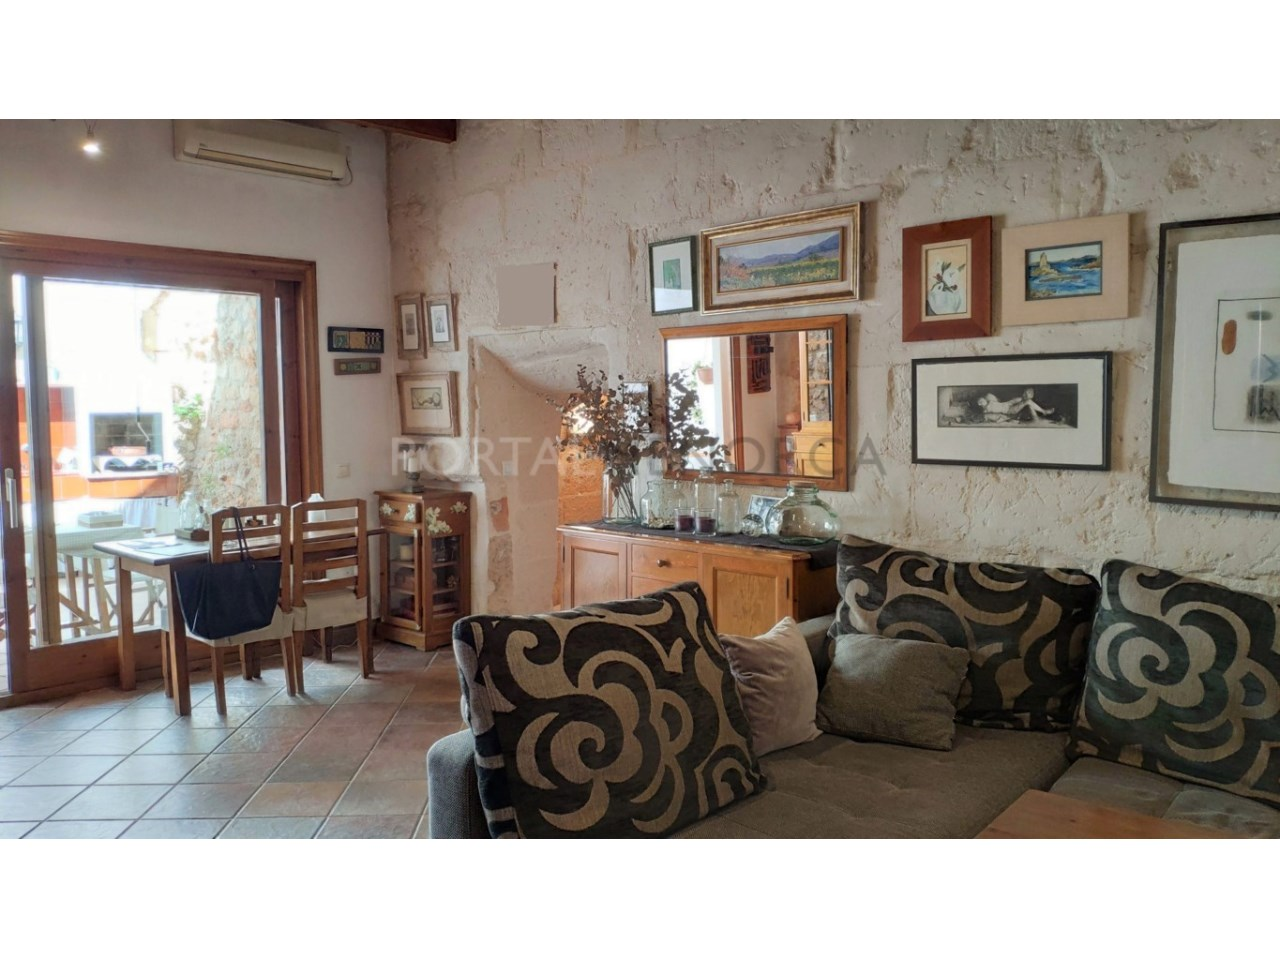 House for sale in the old town of Ciutadella-Living room